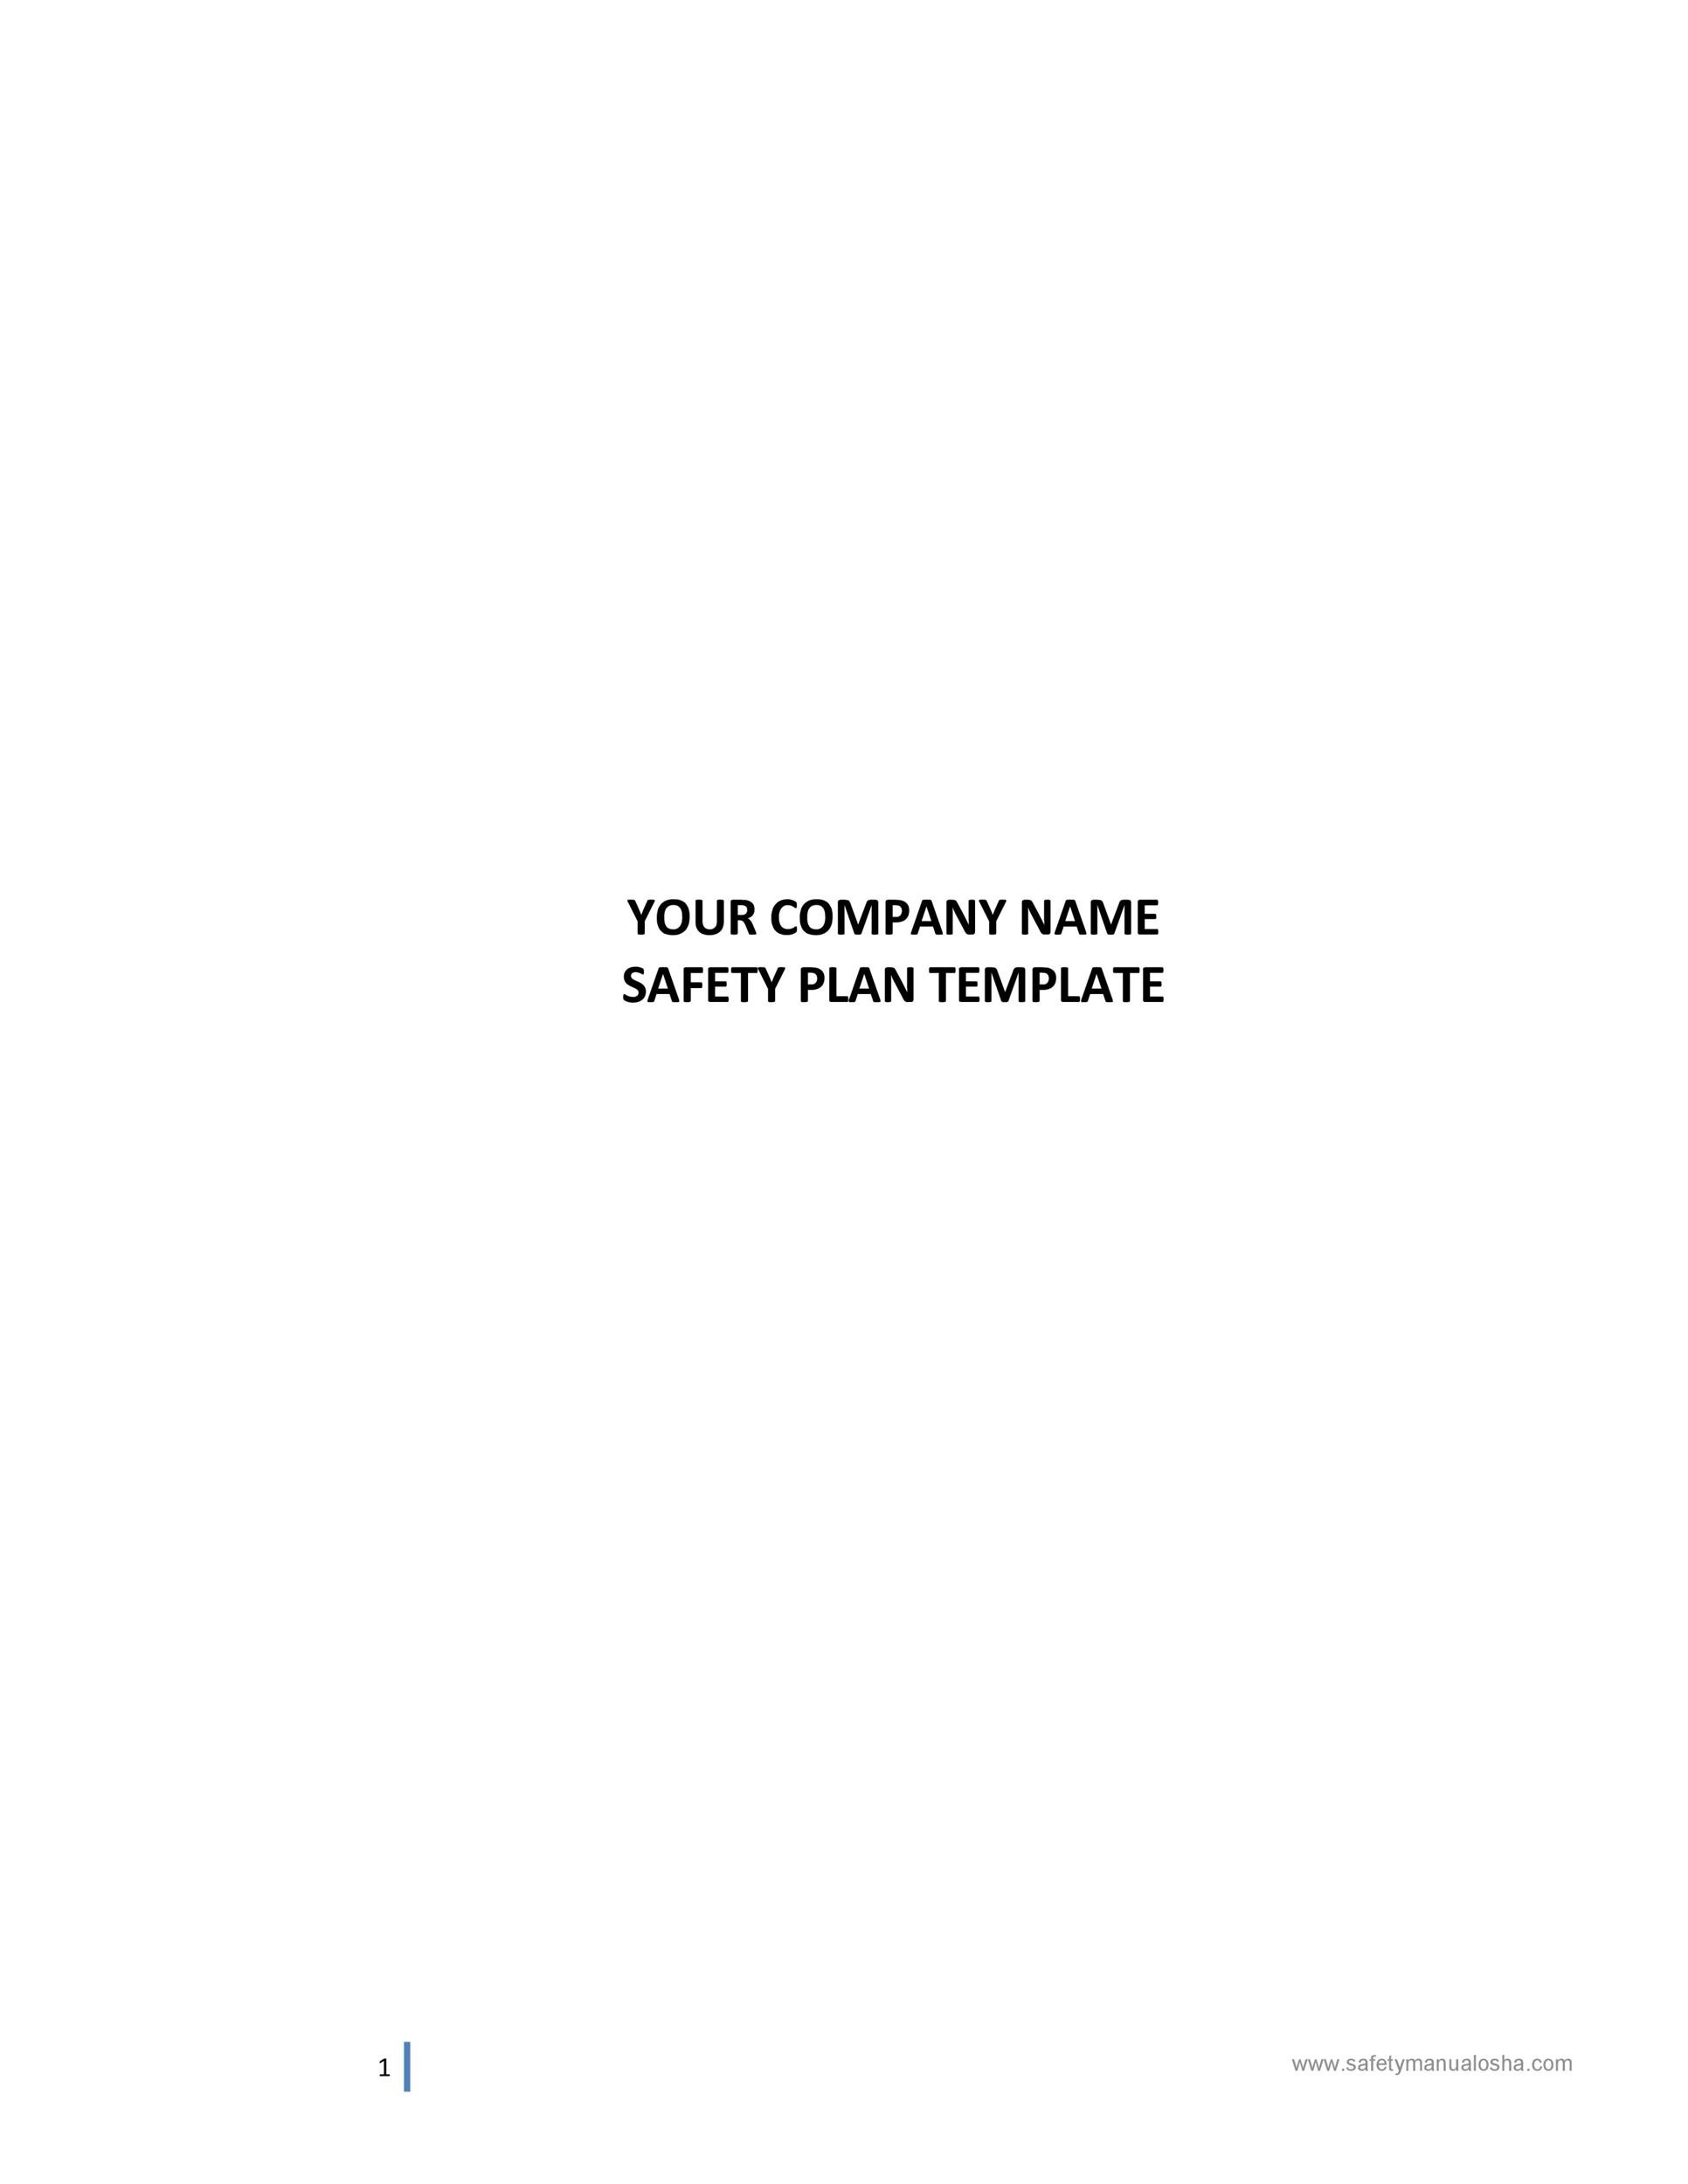 Free safety plan template 35